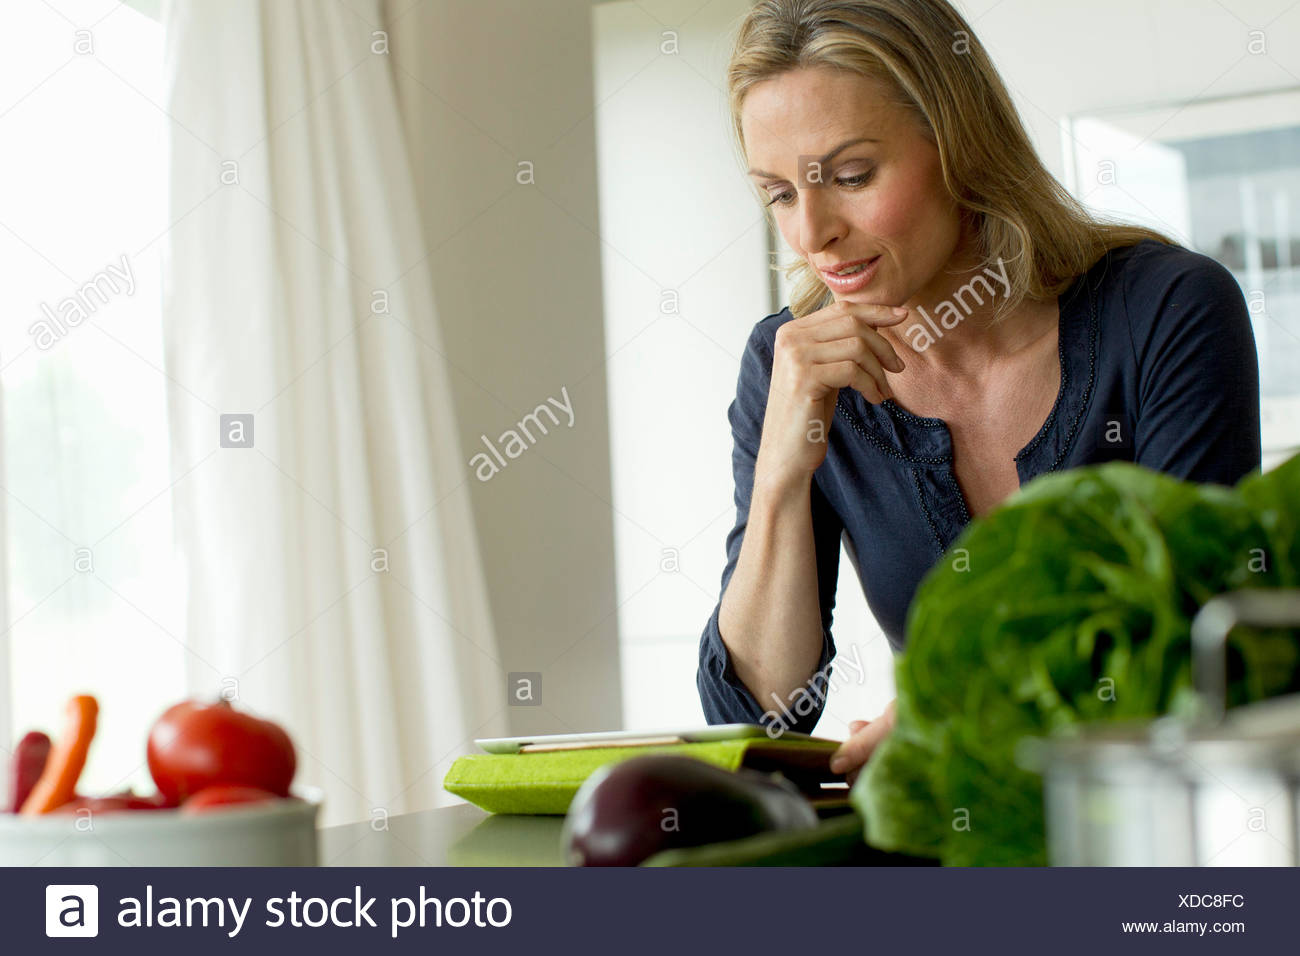 Mature Woman using digital tablet Photo Stock